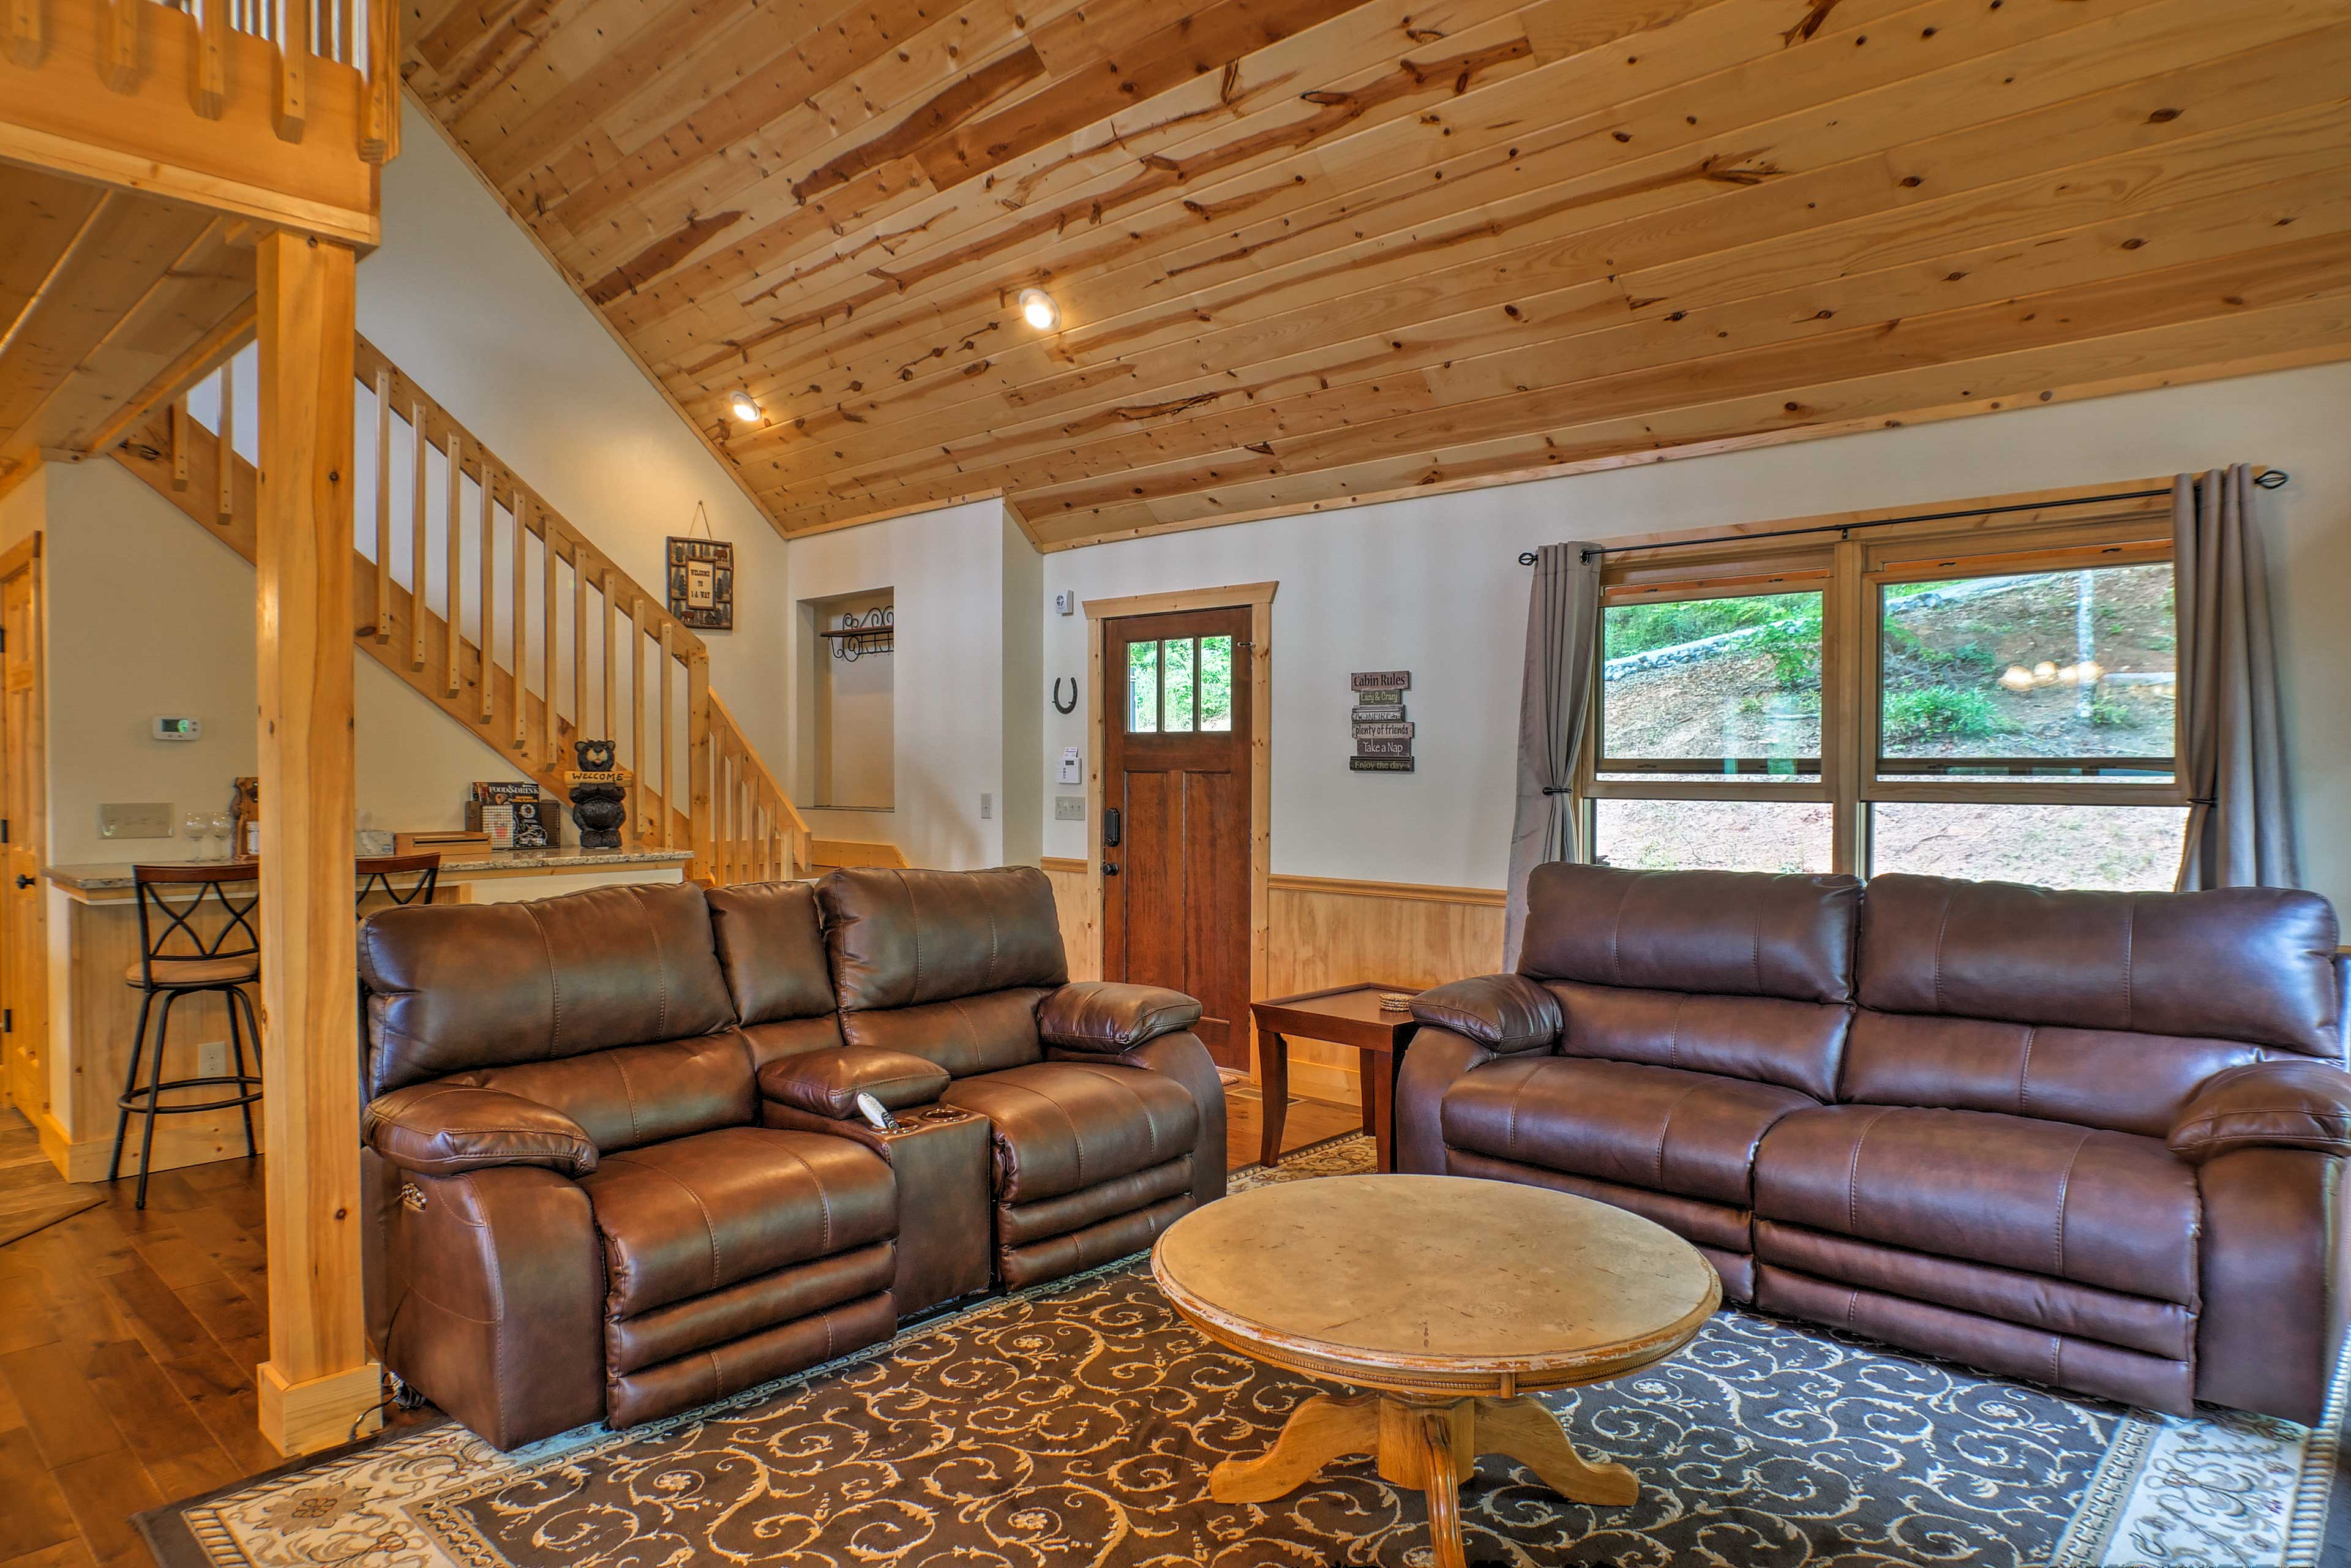 Hardwood floors and ceilings create the authentic cabin ambiance.